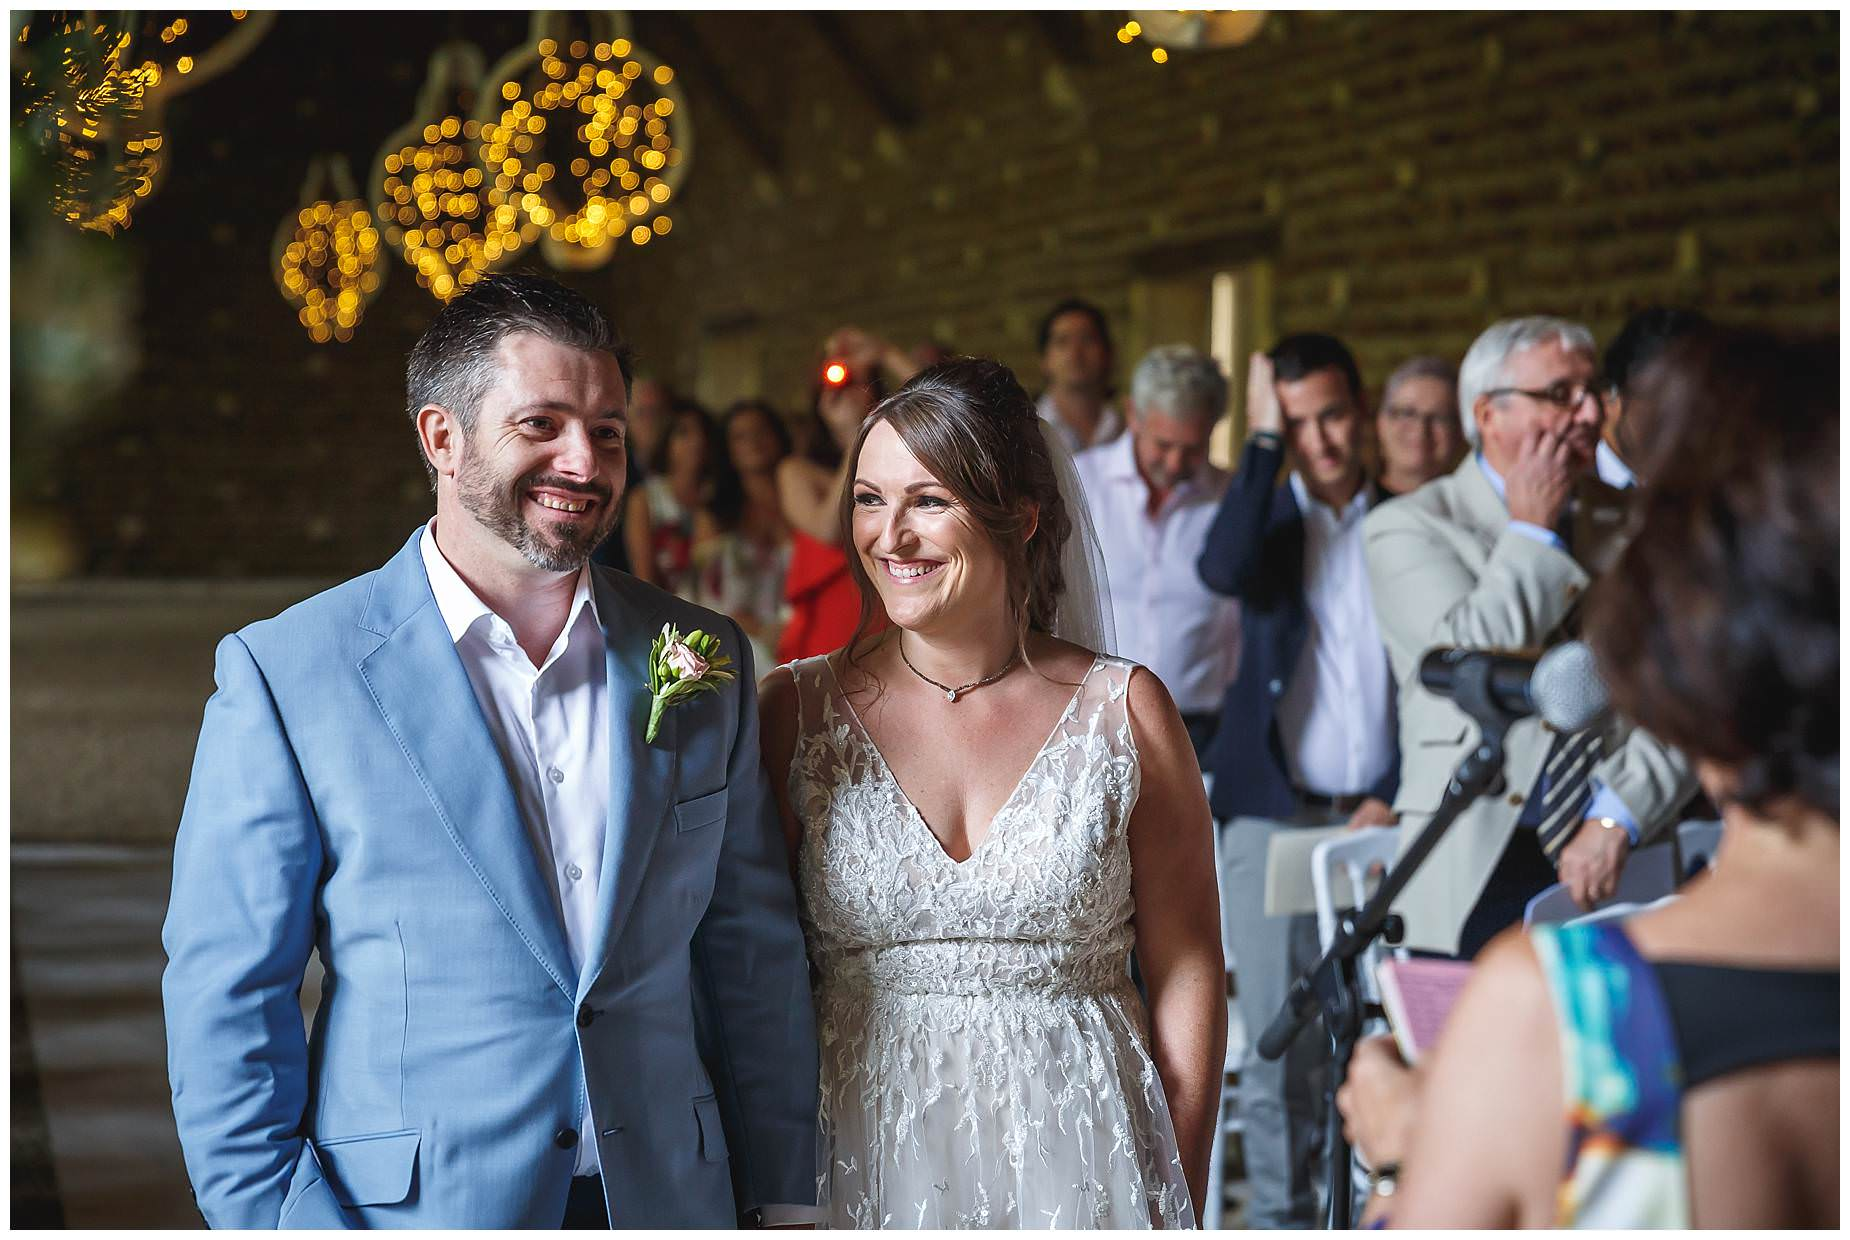 wedding in barn chateau de Vergieres